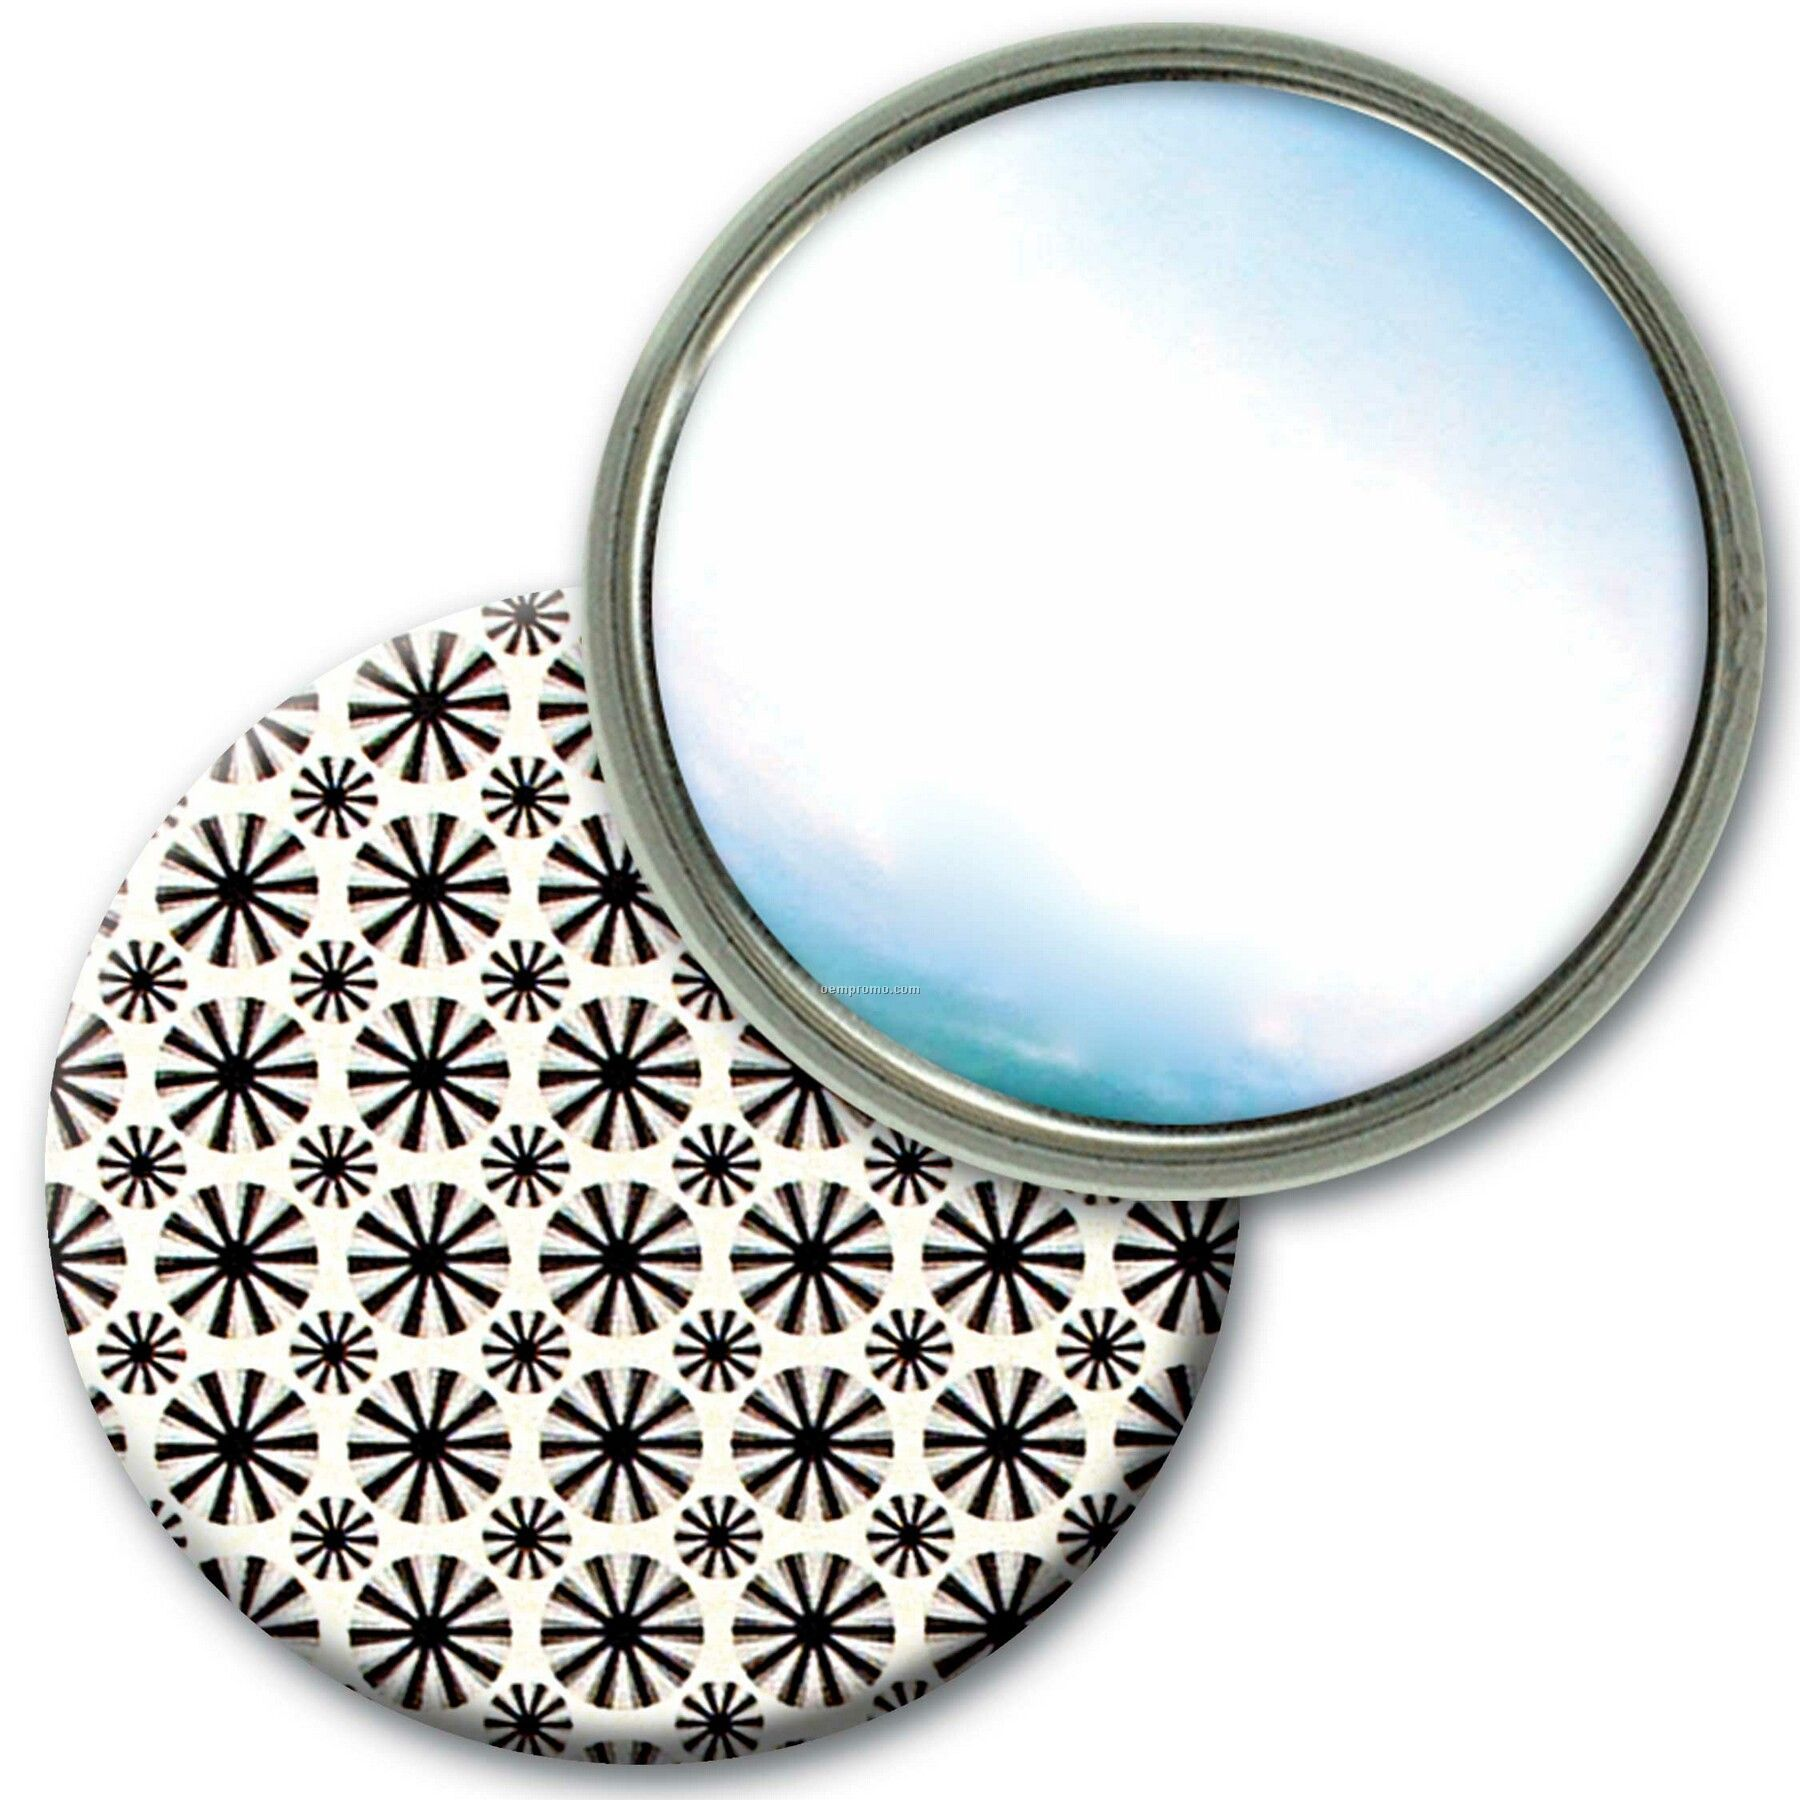 Compact Mirror Lenticular Animated Wheels Effect (Blank)